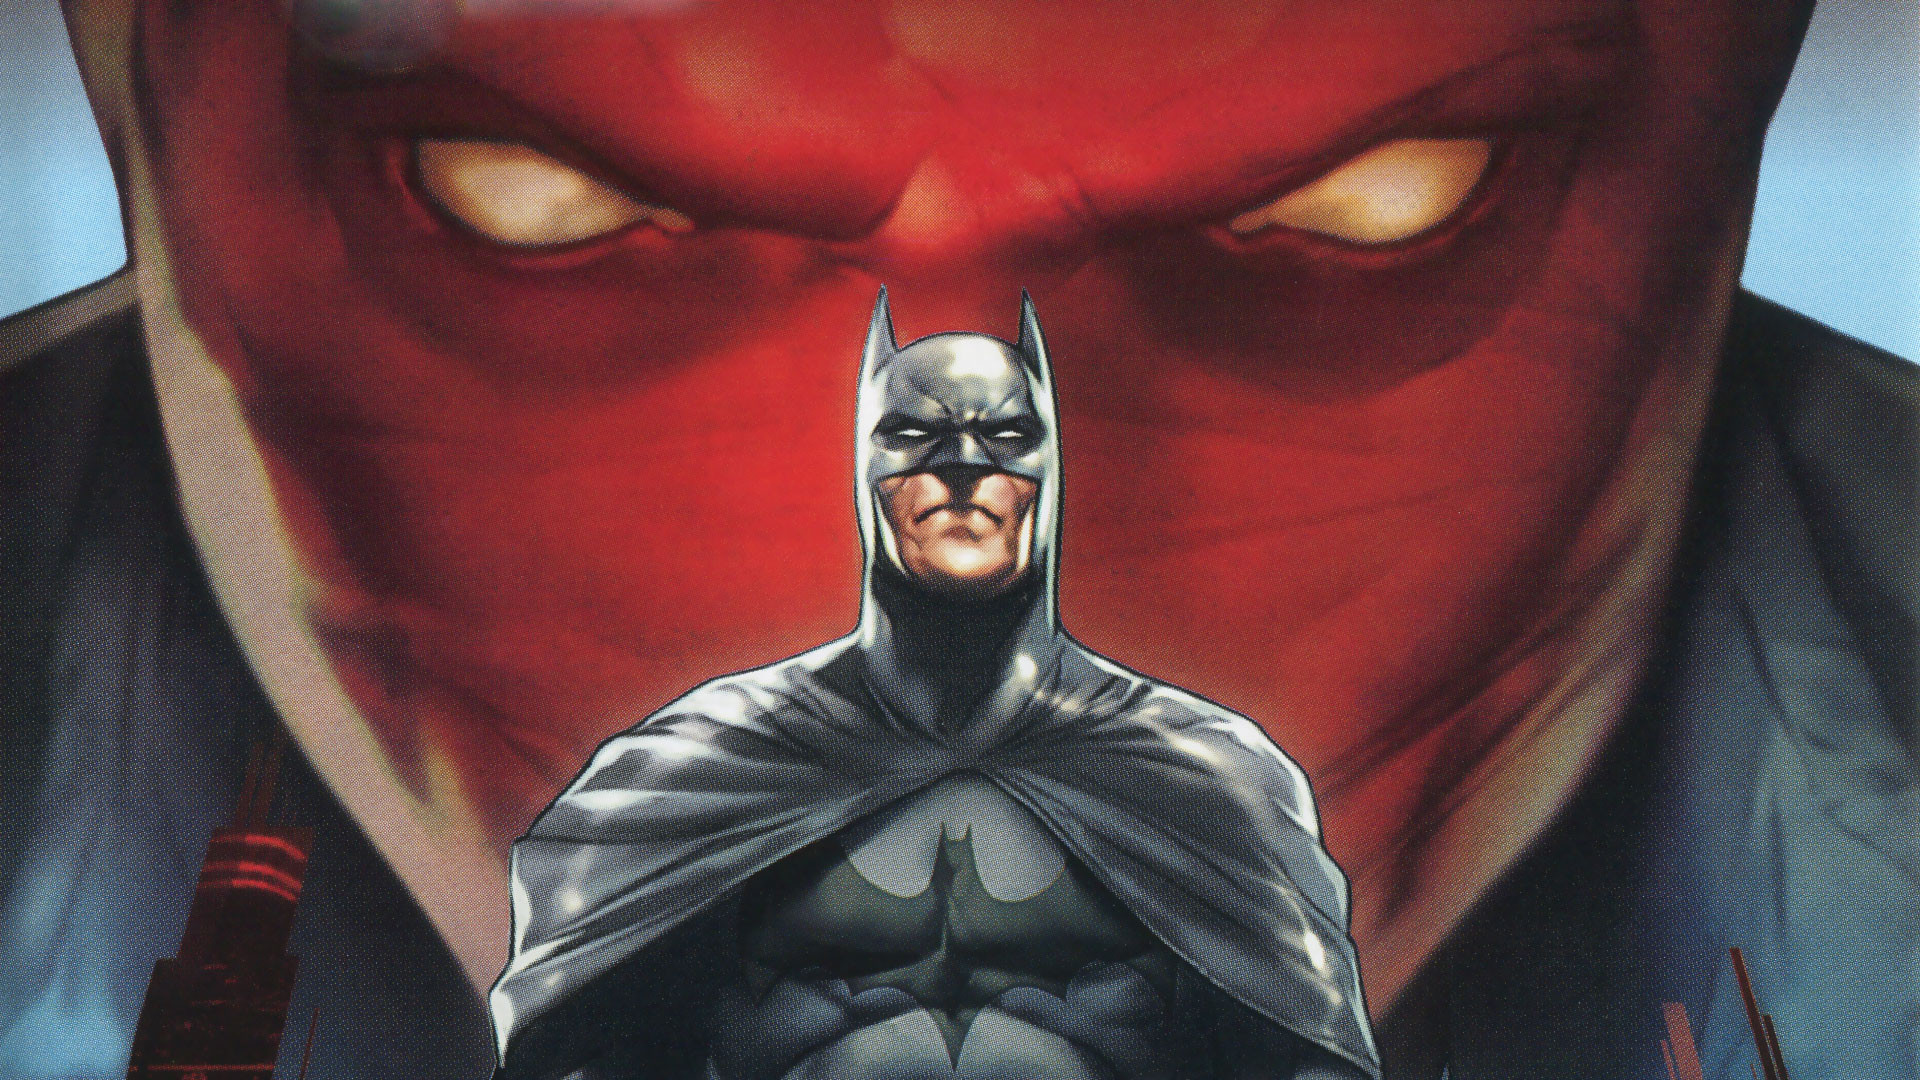 44 batman red hood hd wallpaper on wallpapersafari - Hood cartoon wallpaper ...